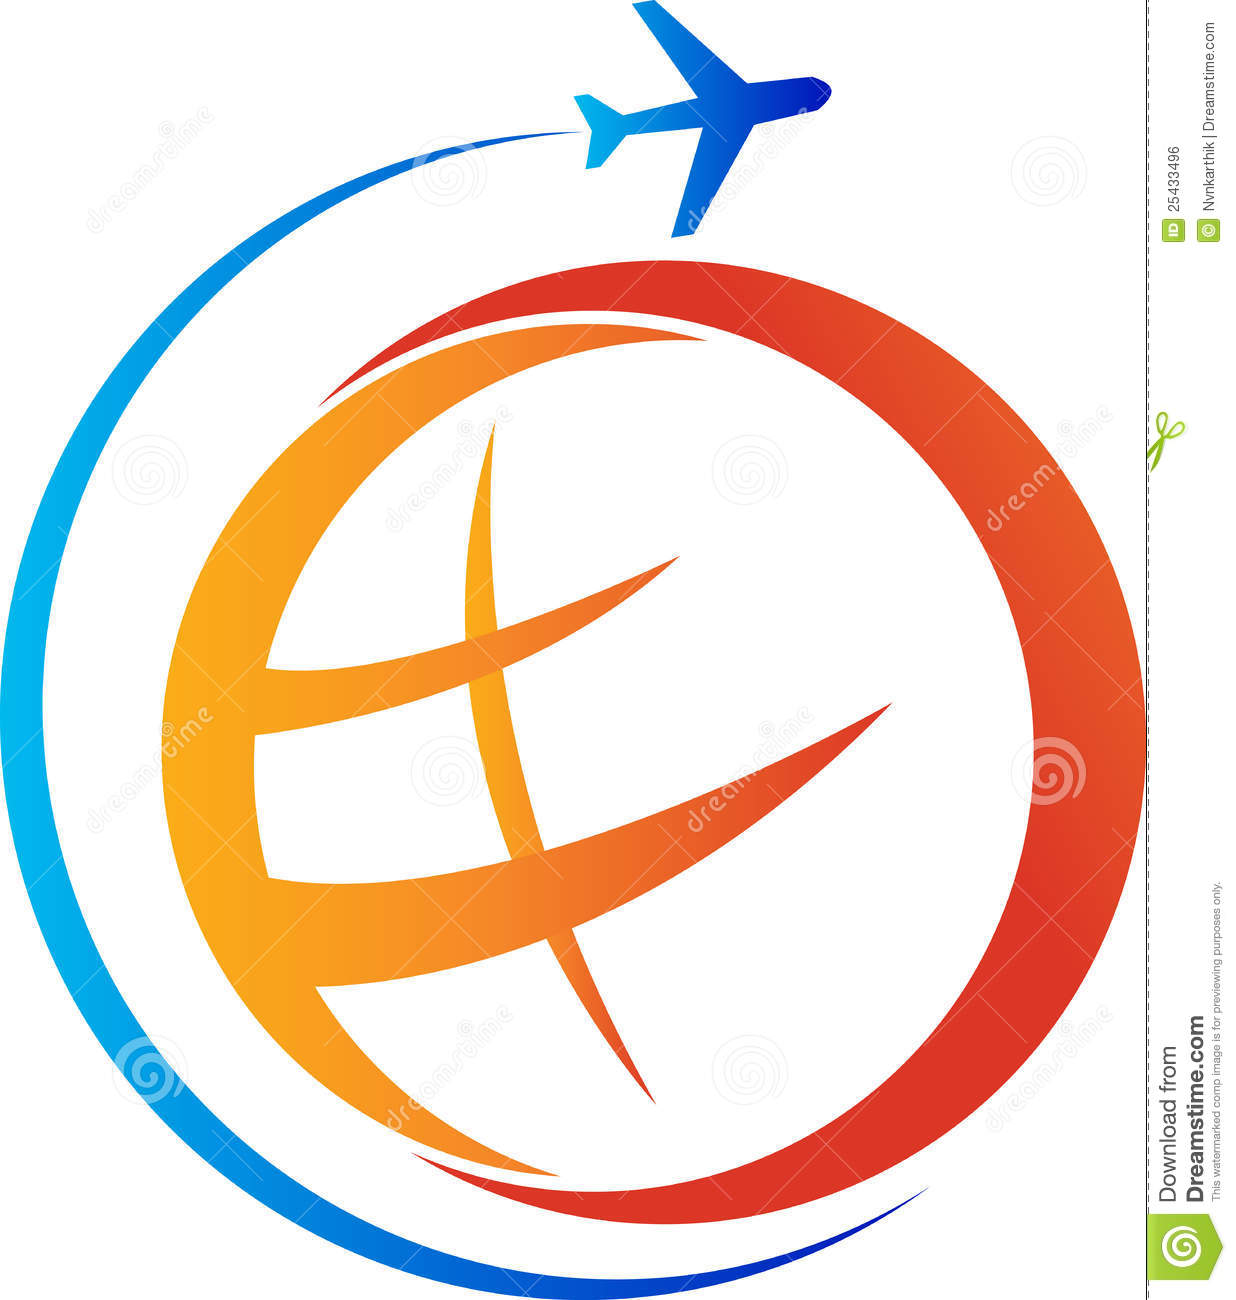 Travel Logo Royalty Free Stock Image - Image: 25433496